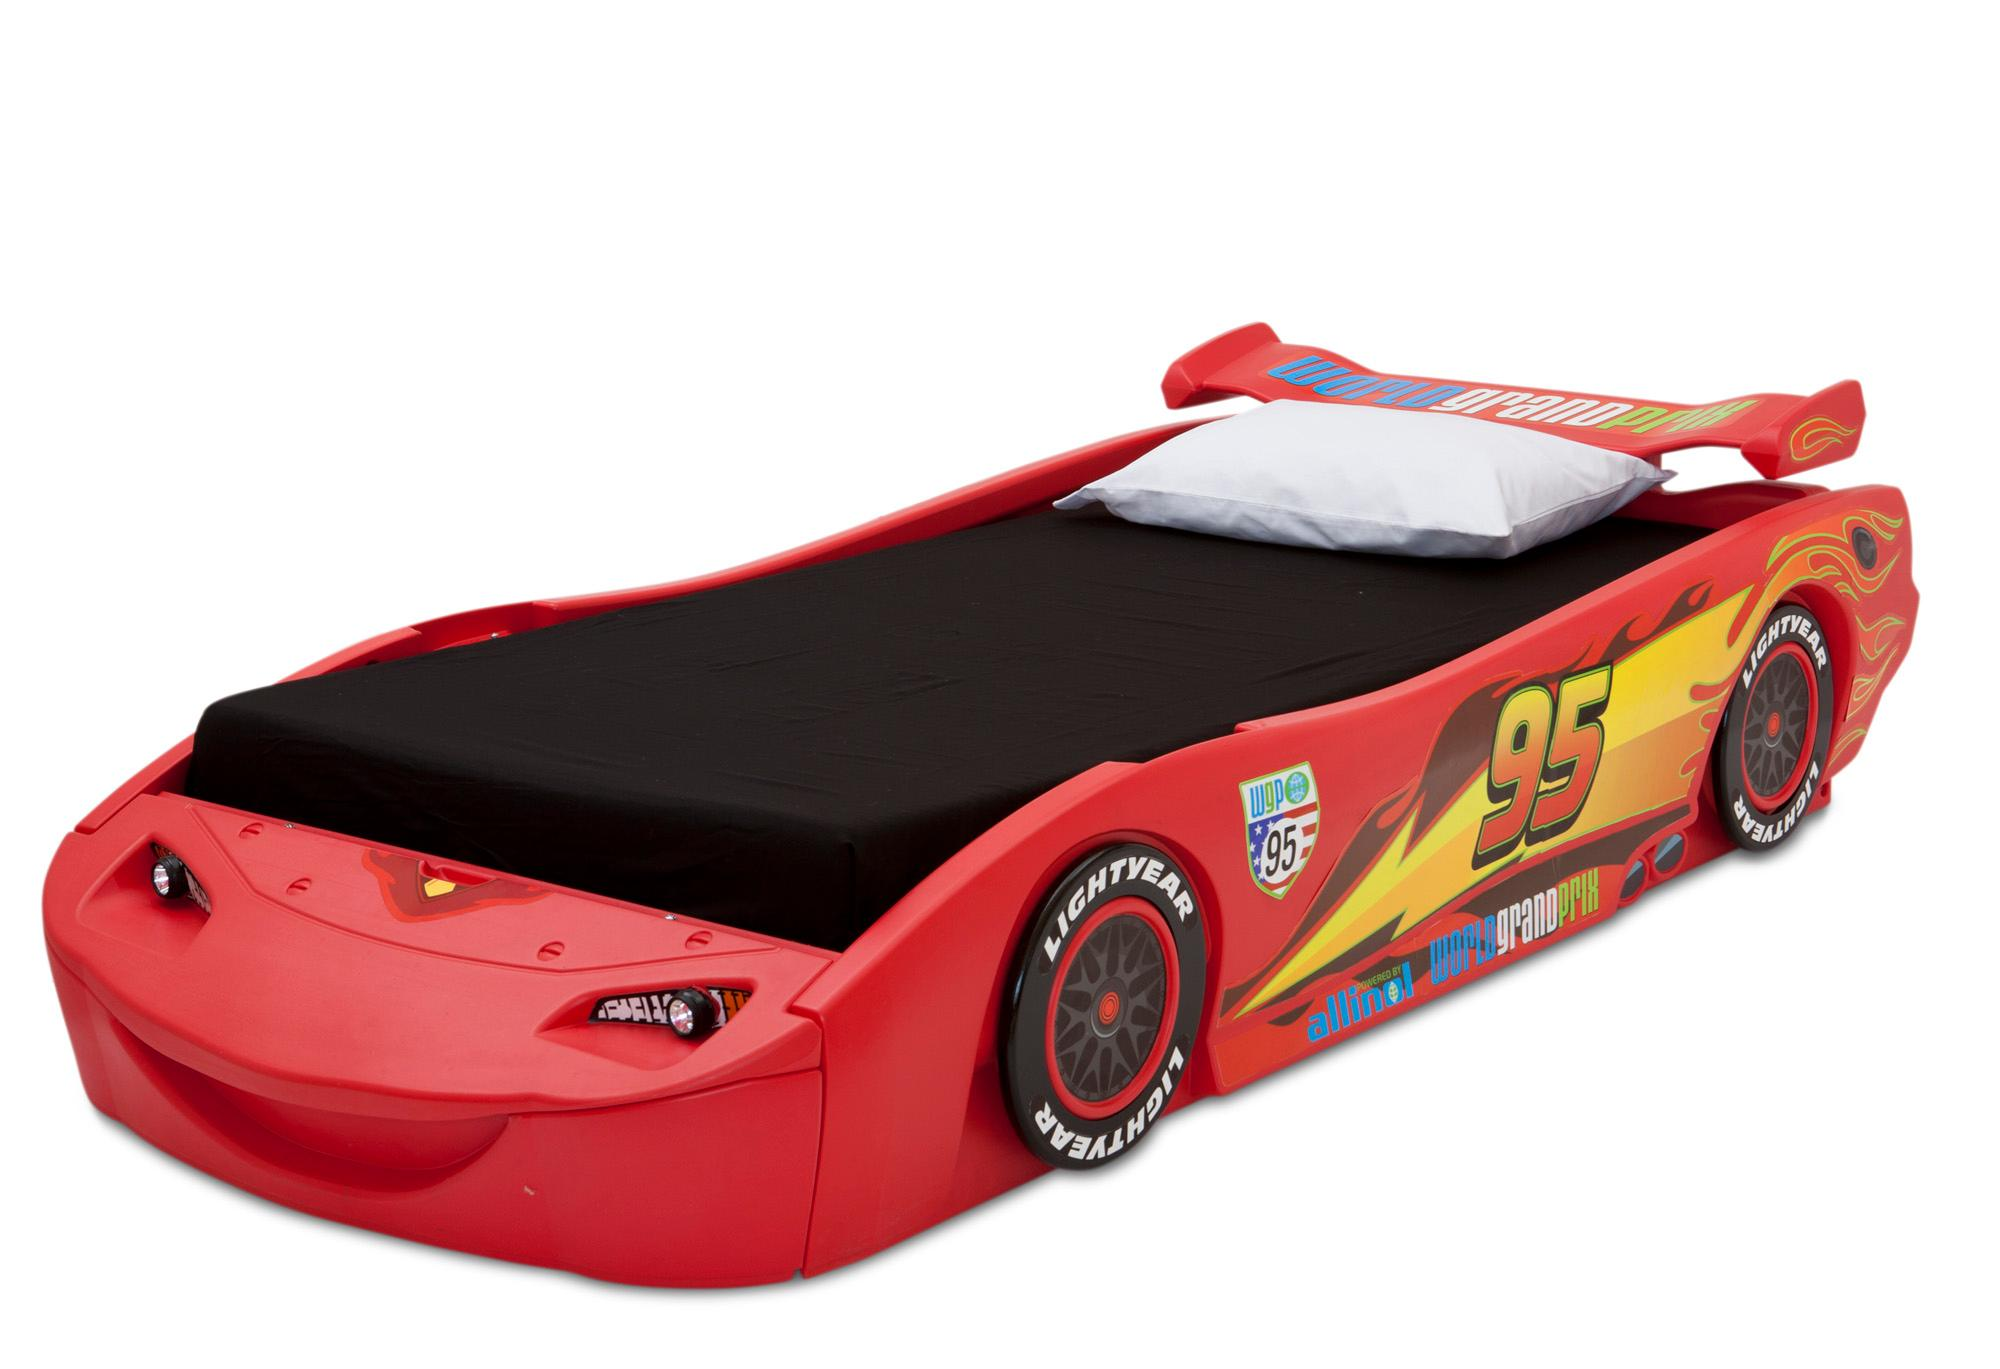 Amazon.com: Delta Children Cars Lightning Mcqueen Twin Bed with Lights, Disney/Pixar Cars: Baby